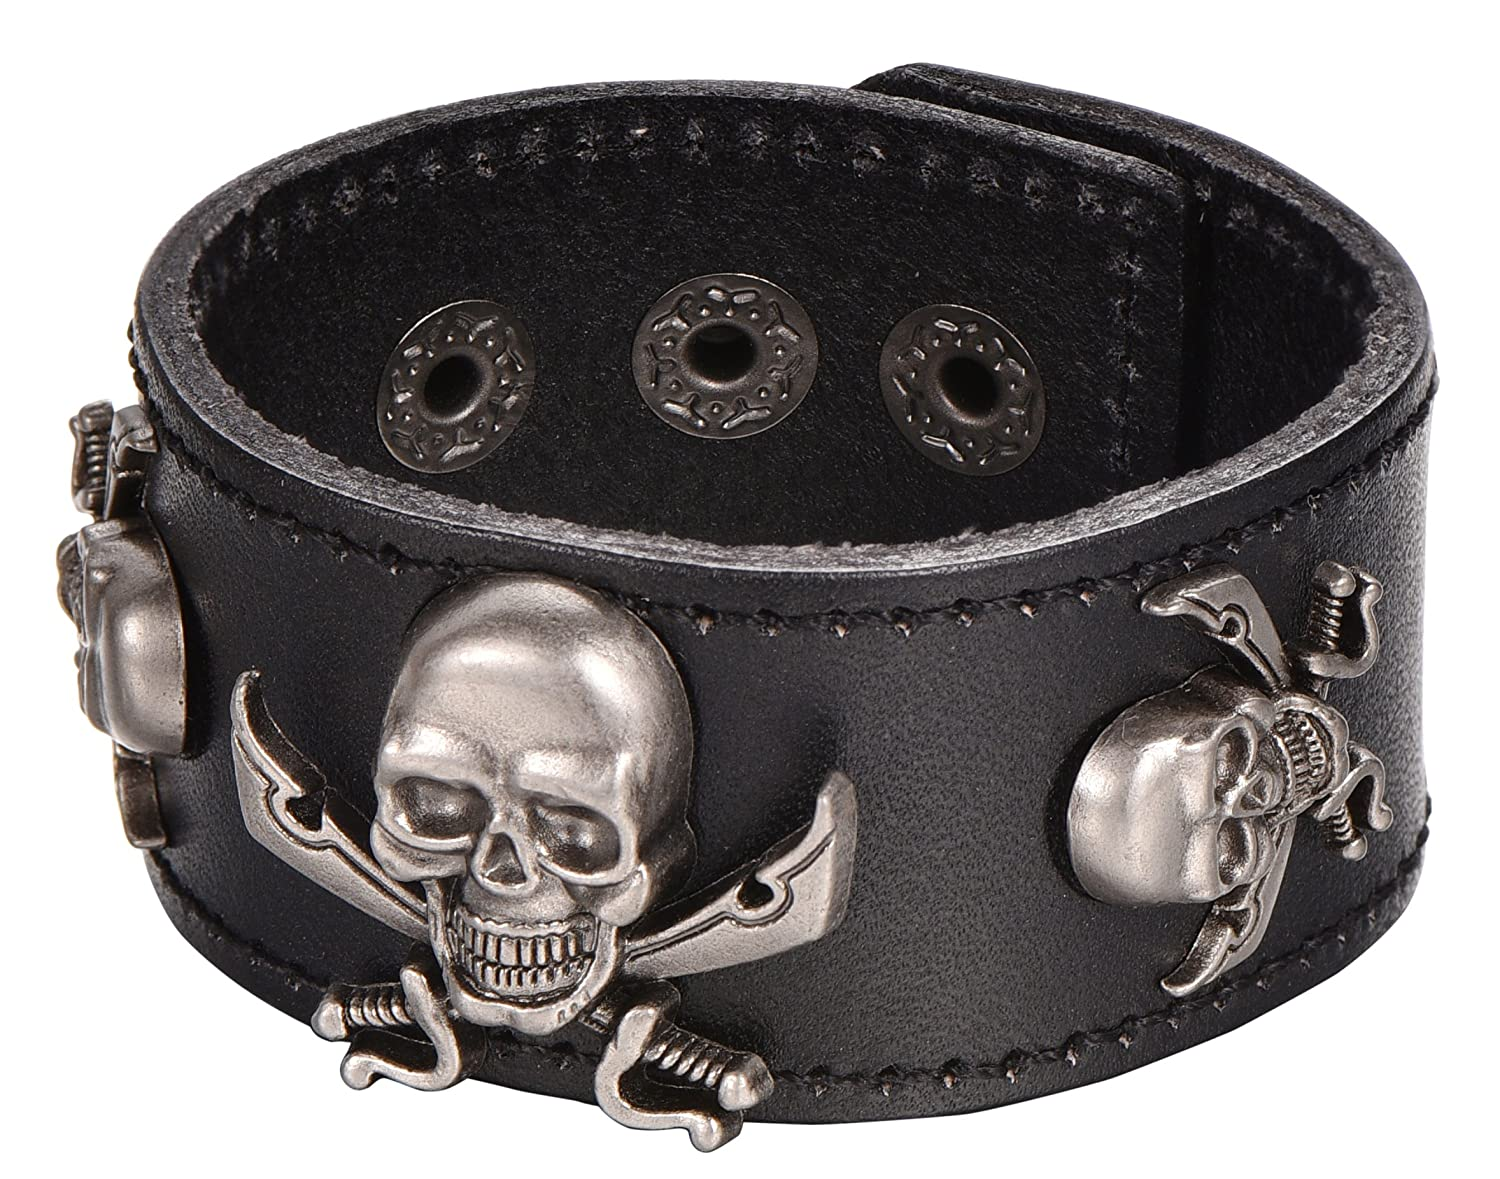 Black Leather Pirate Skull Charms Cuff Wristband